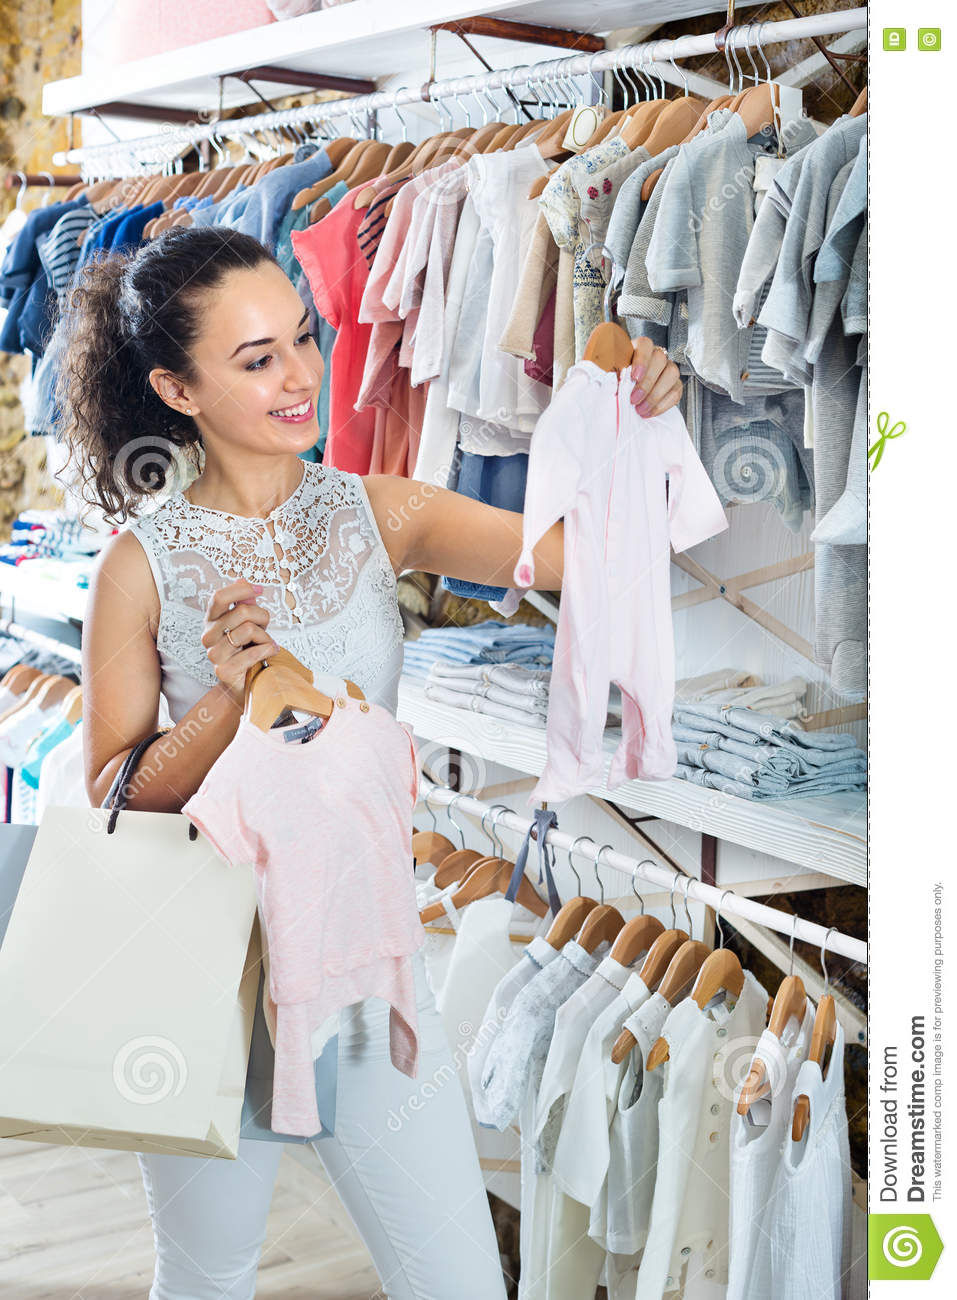 fc397c6718 Young cheerful woman choosing baby pajamas in kids apparel boutique. More  similar stock images